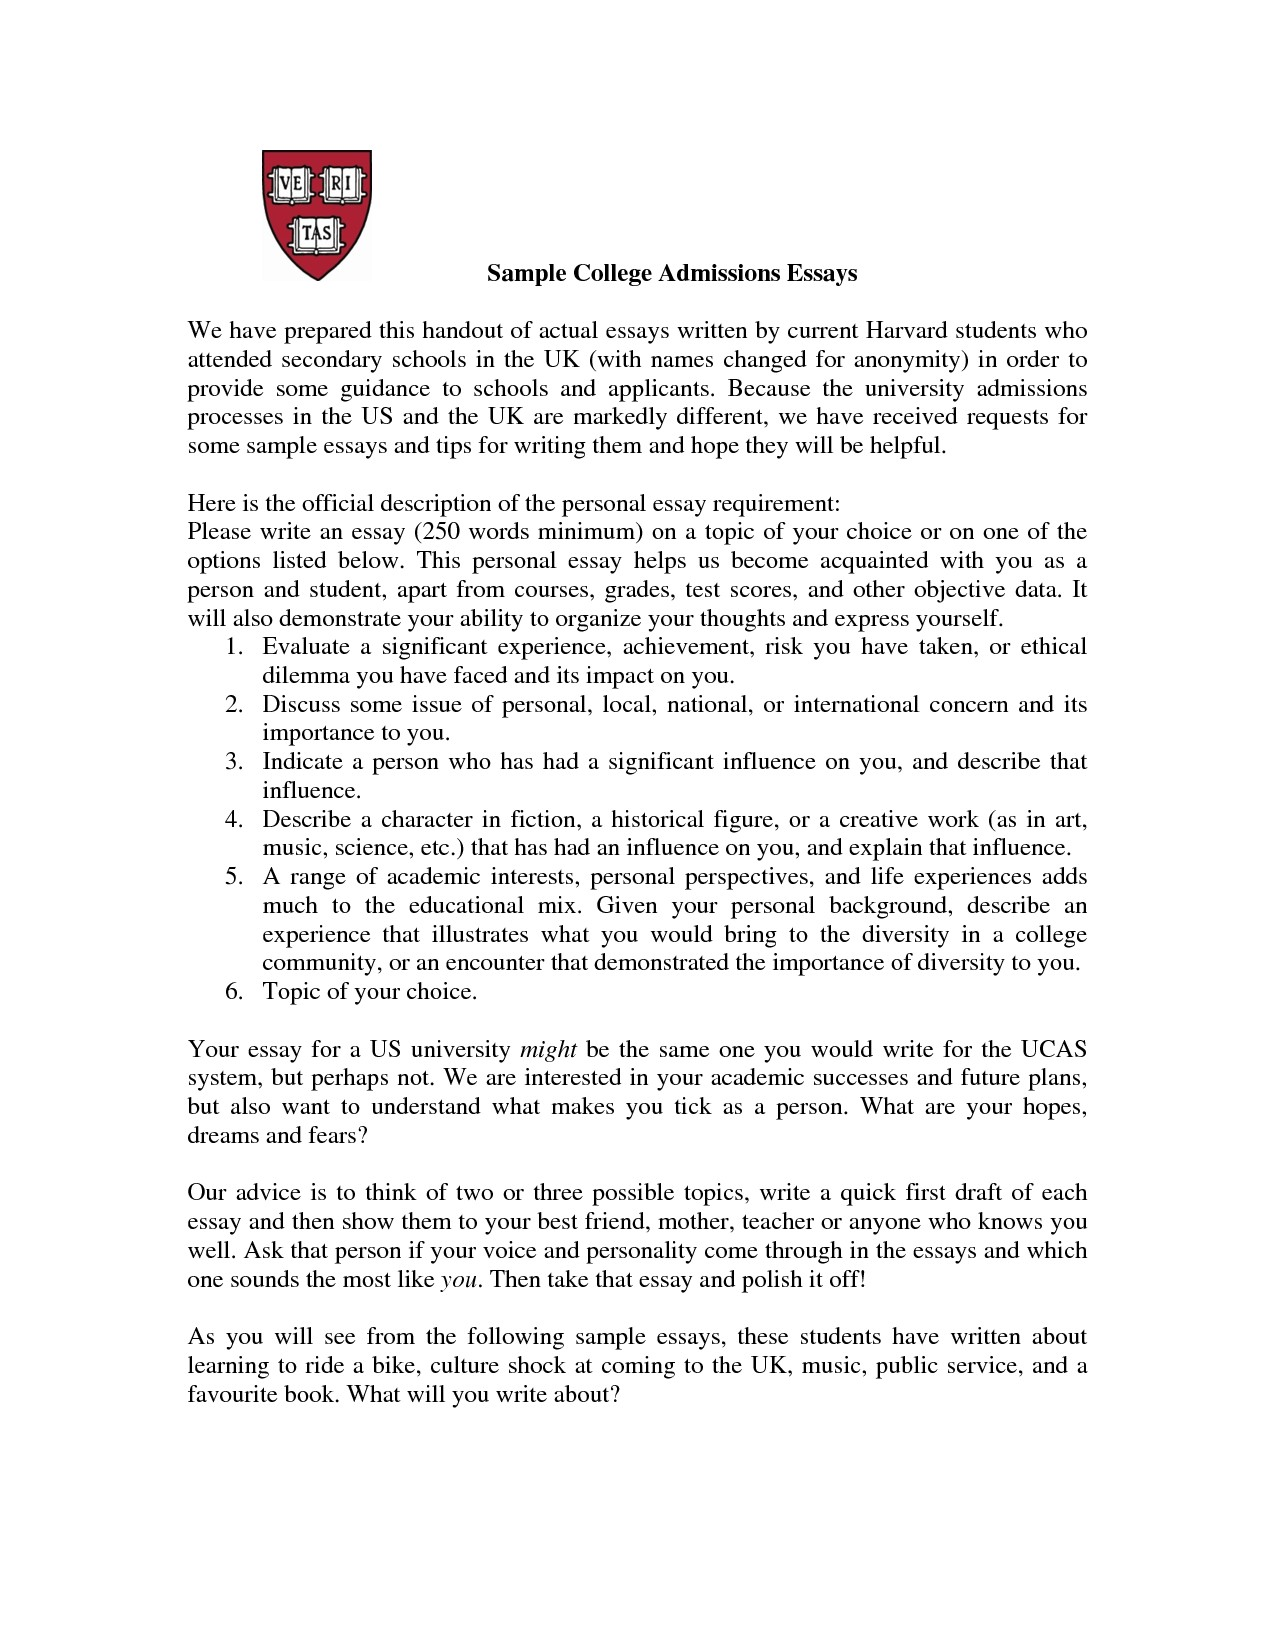 016 Essay Example Perfect College Examples Najmlaemah Com Good Andest Ideas Of Mon Application Sample Transfer Essays Scholarship For Admission Introduction Admissions Harvard Common App Remarkable Bad Full